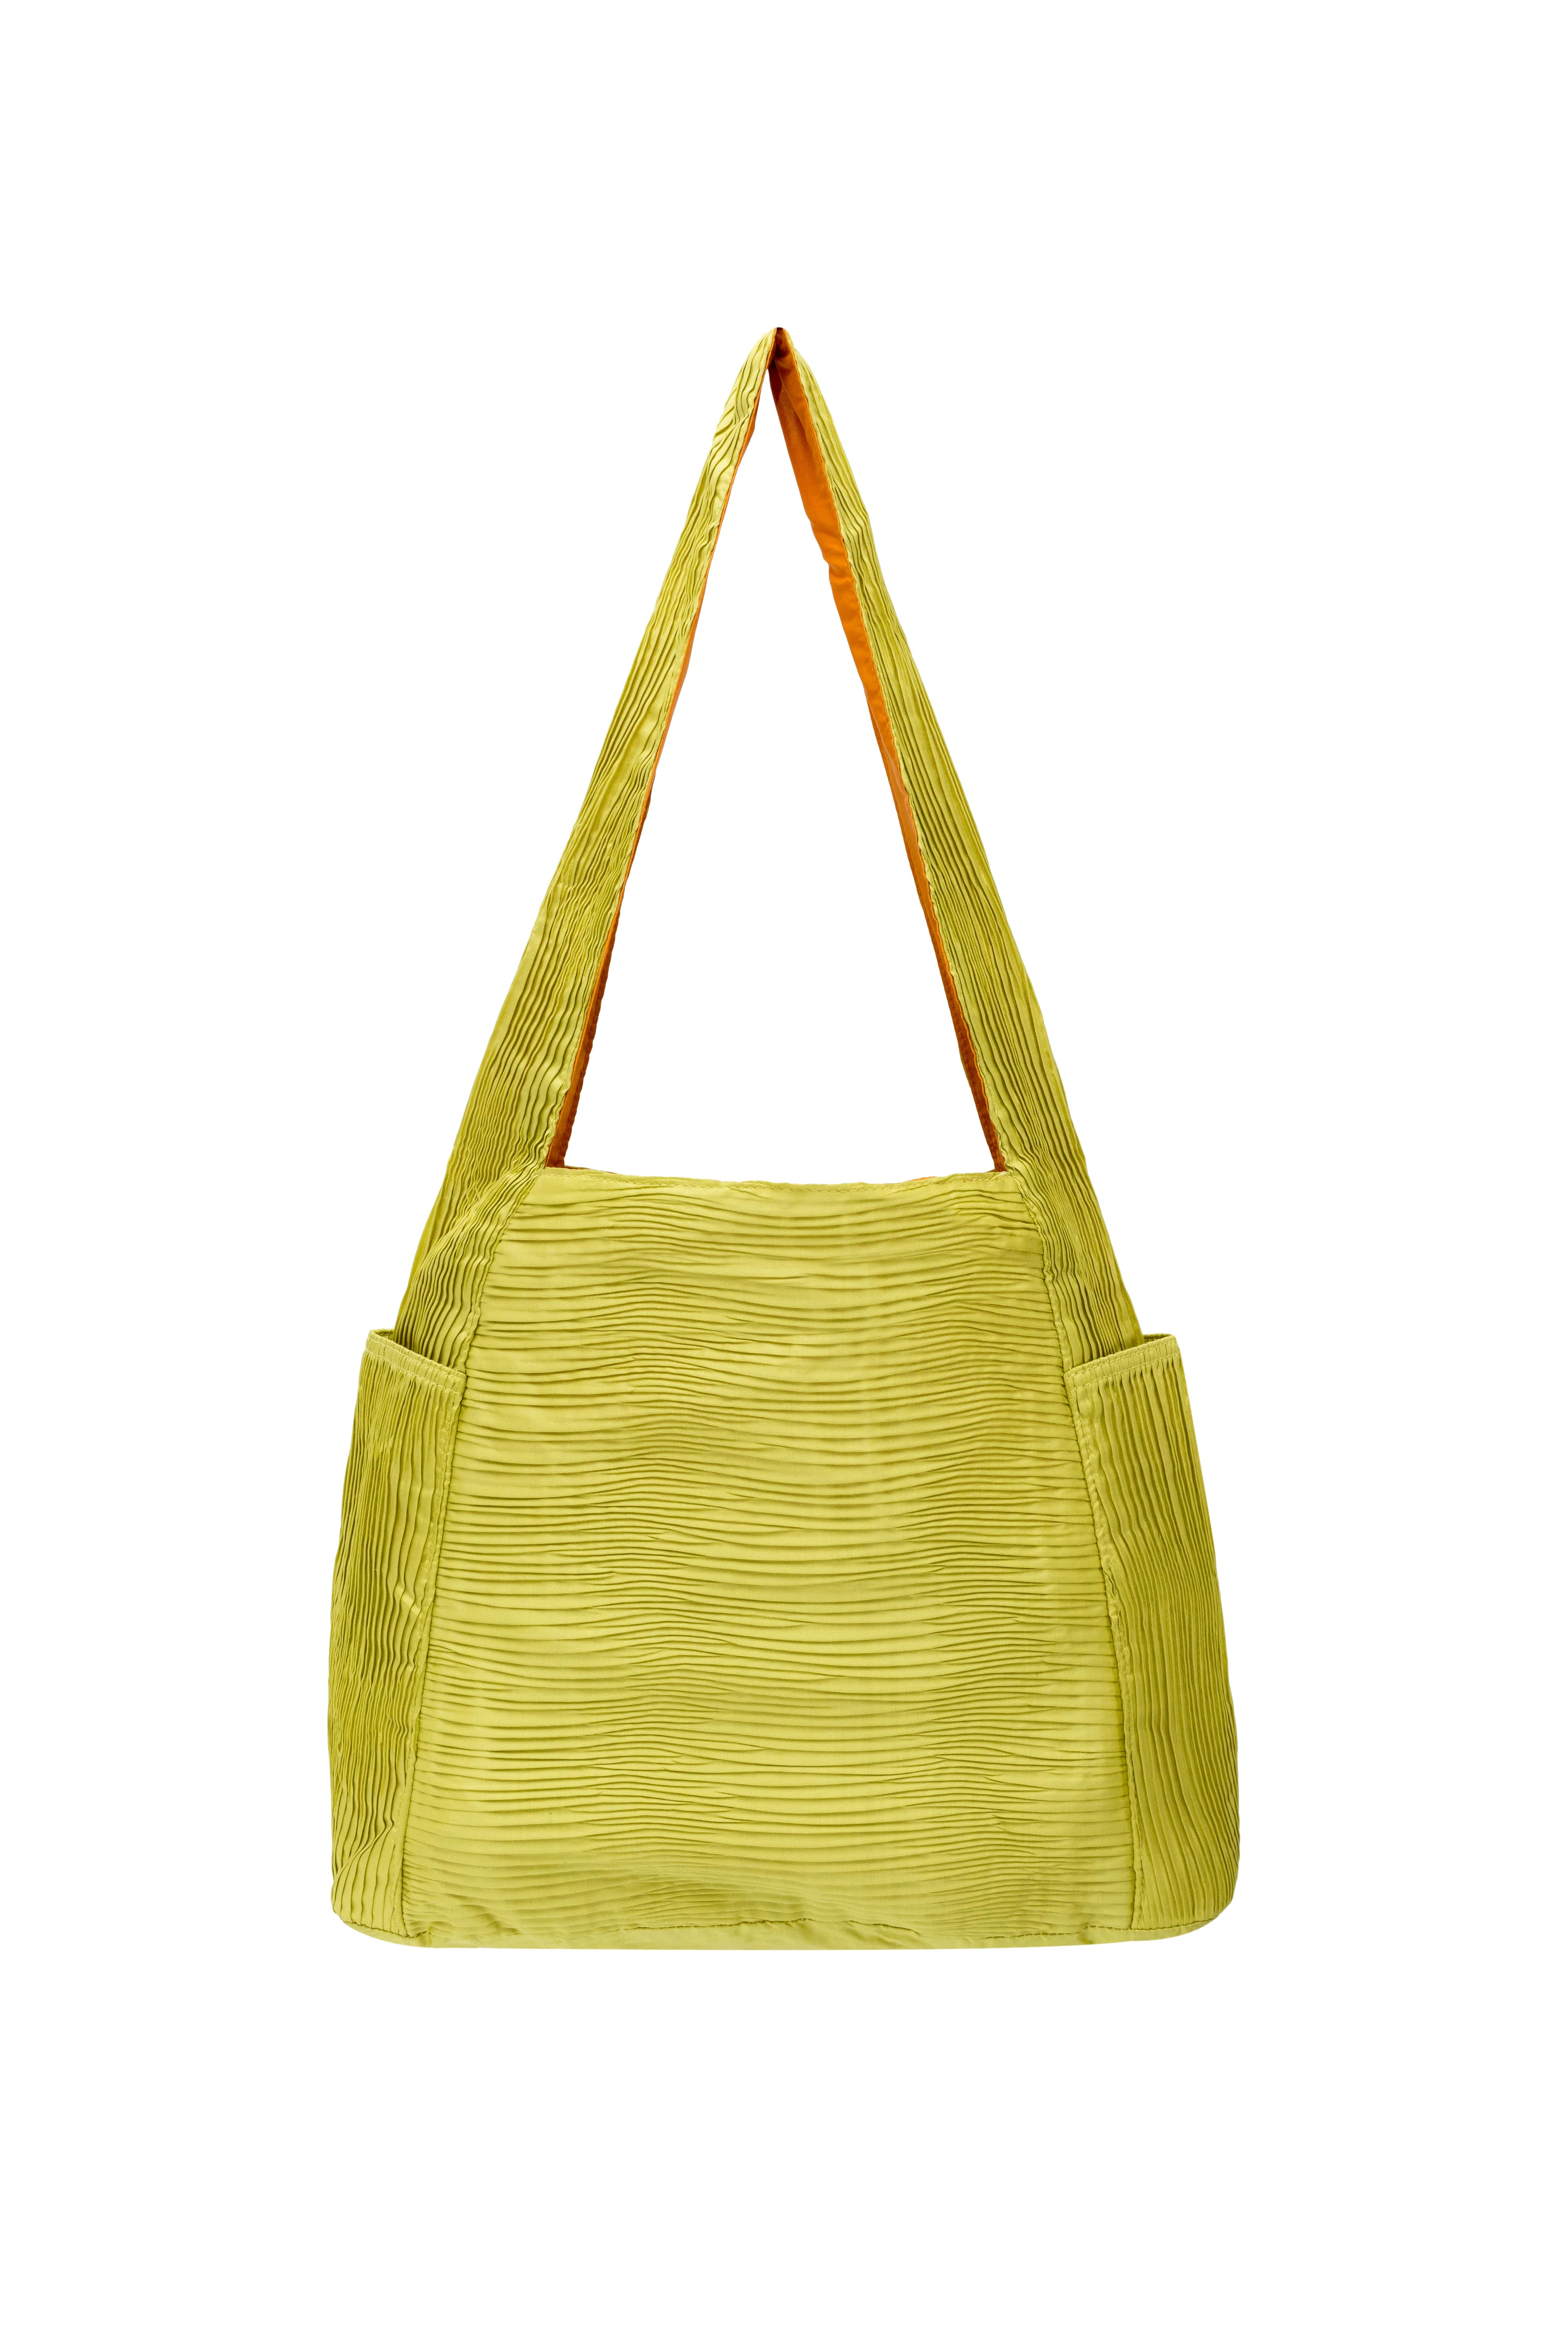 Bolso Jim Thompson plisado verde